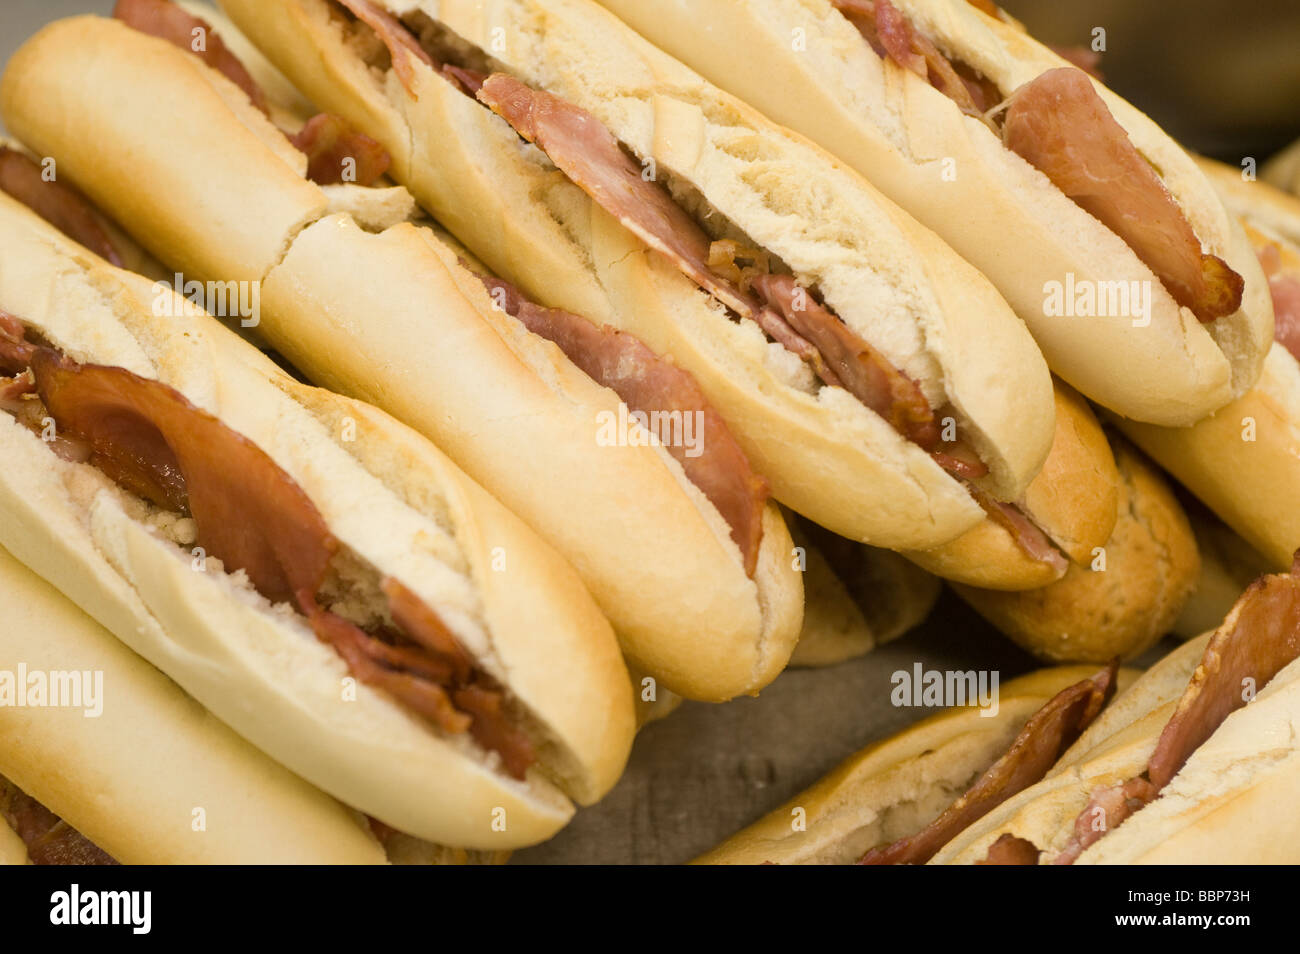 Tray full of bacon baguettes - Stock Image